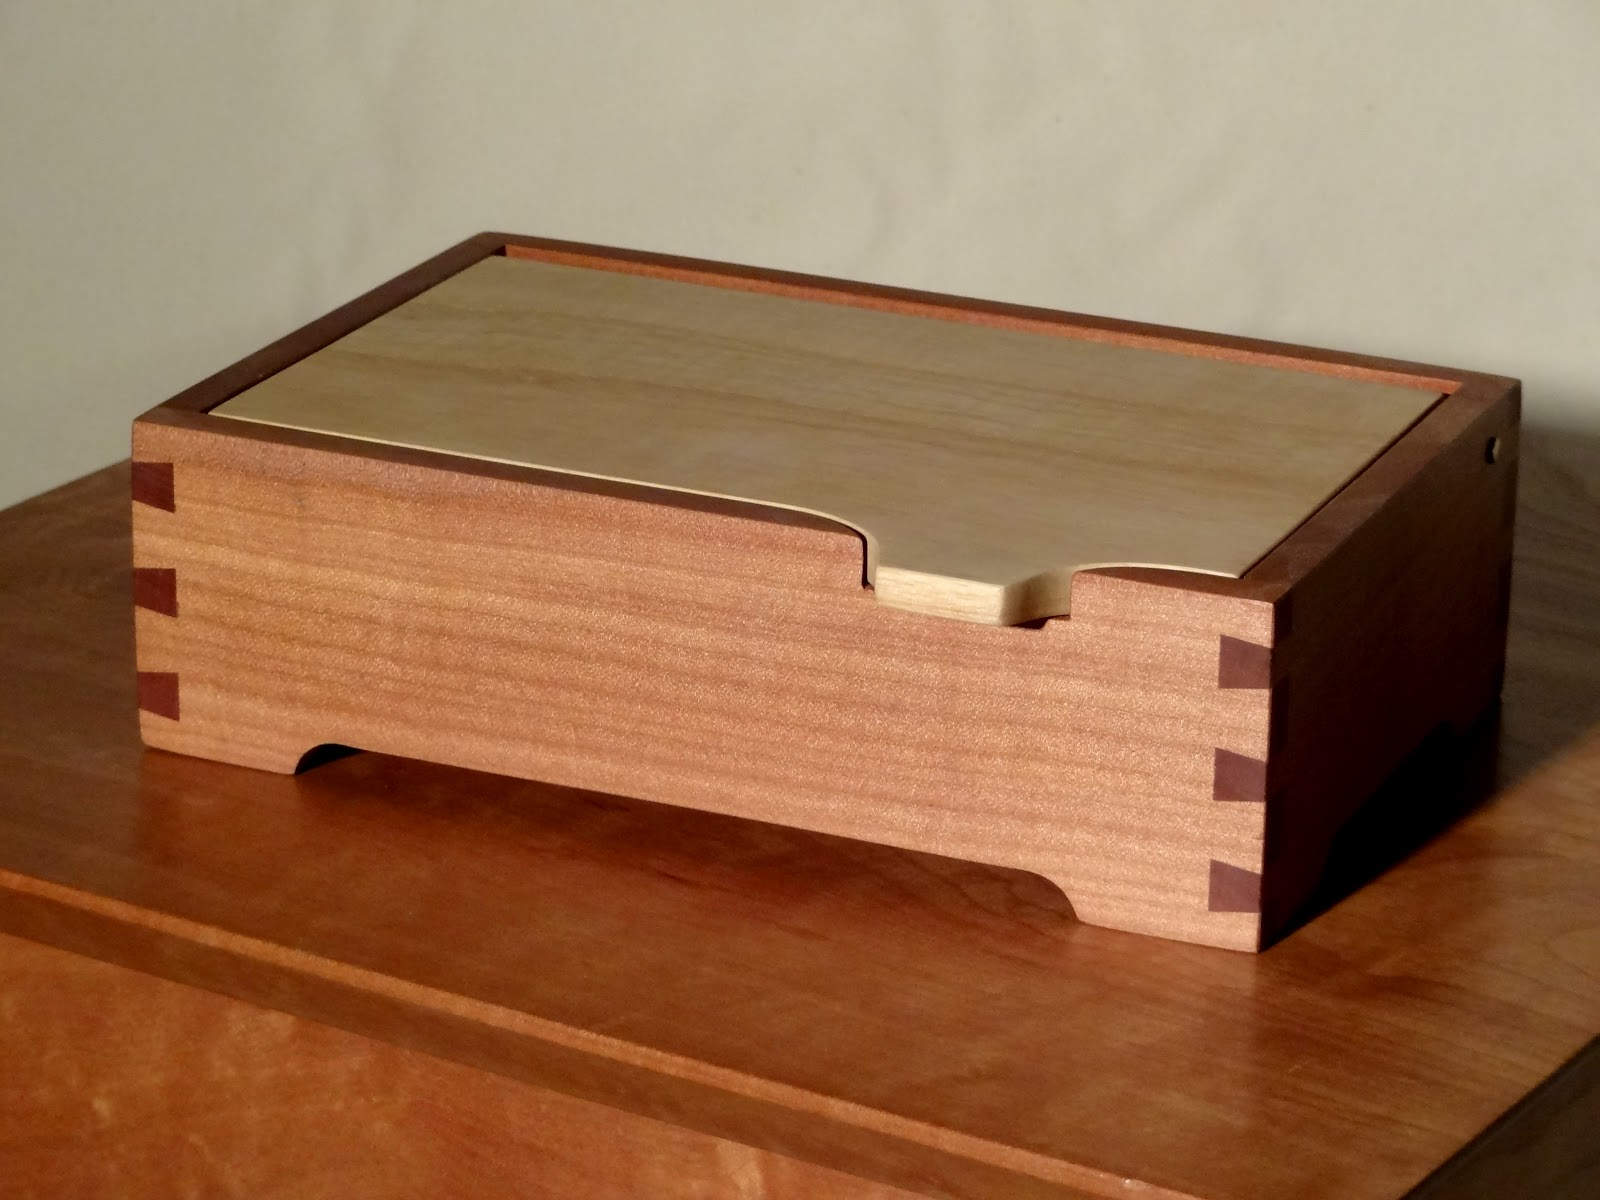 The Dovetail Joint: Completed Projects